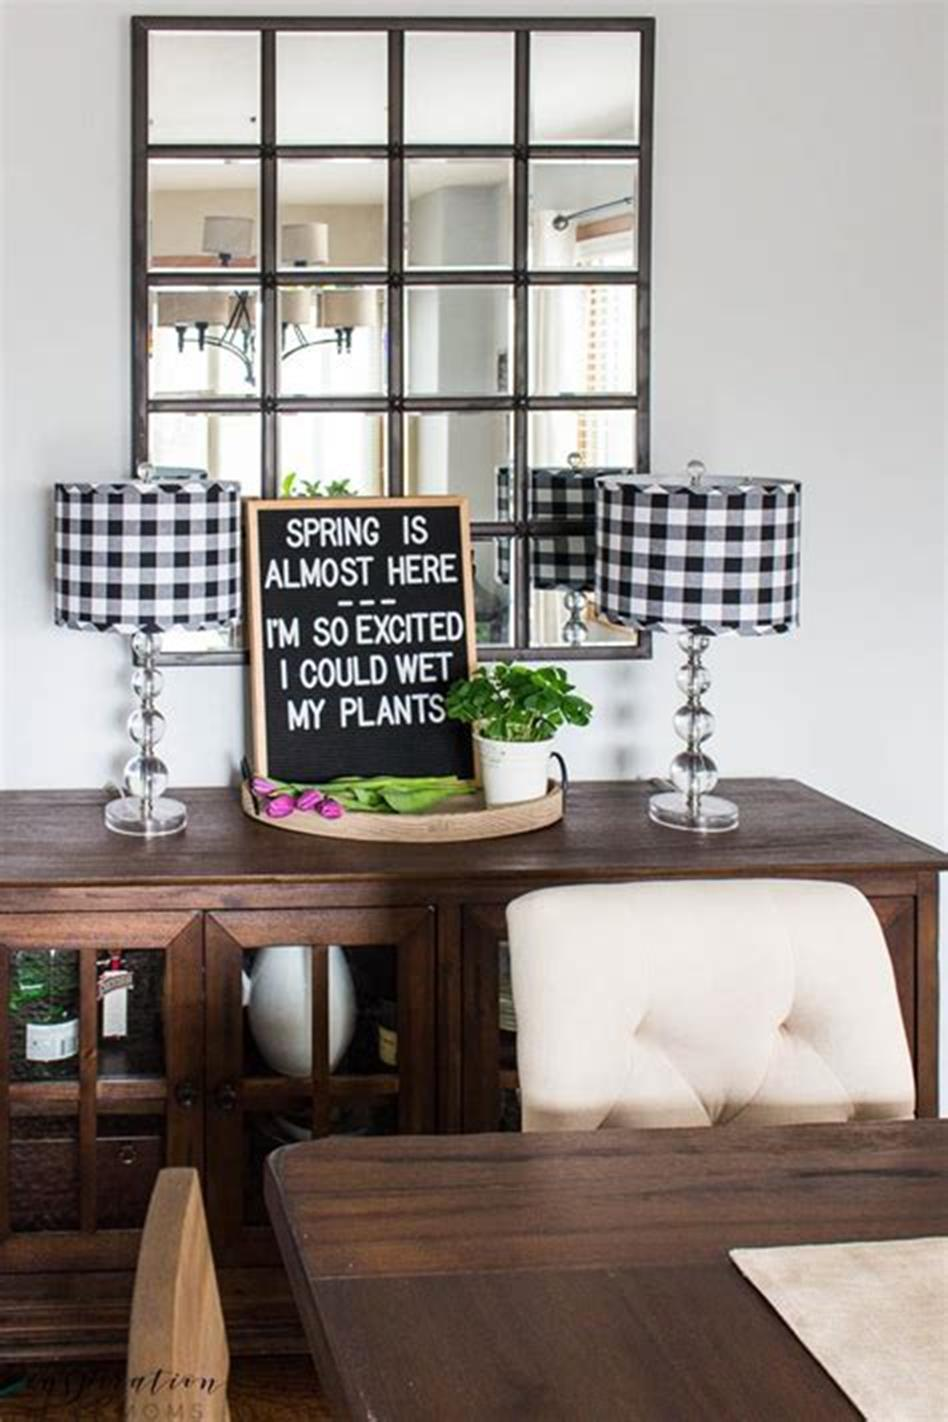 35 Stunning Spring Kitchen and Dining Room Decorating Ideas 2019 3